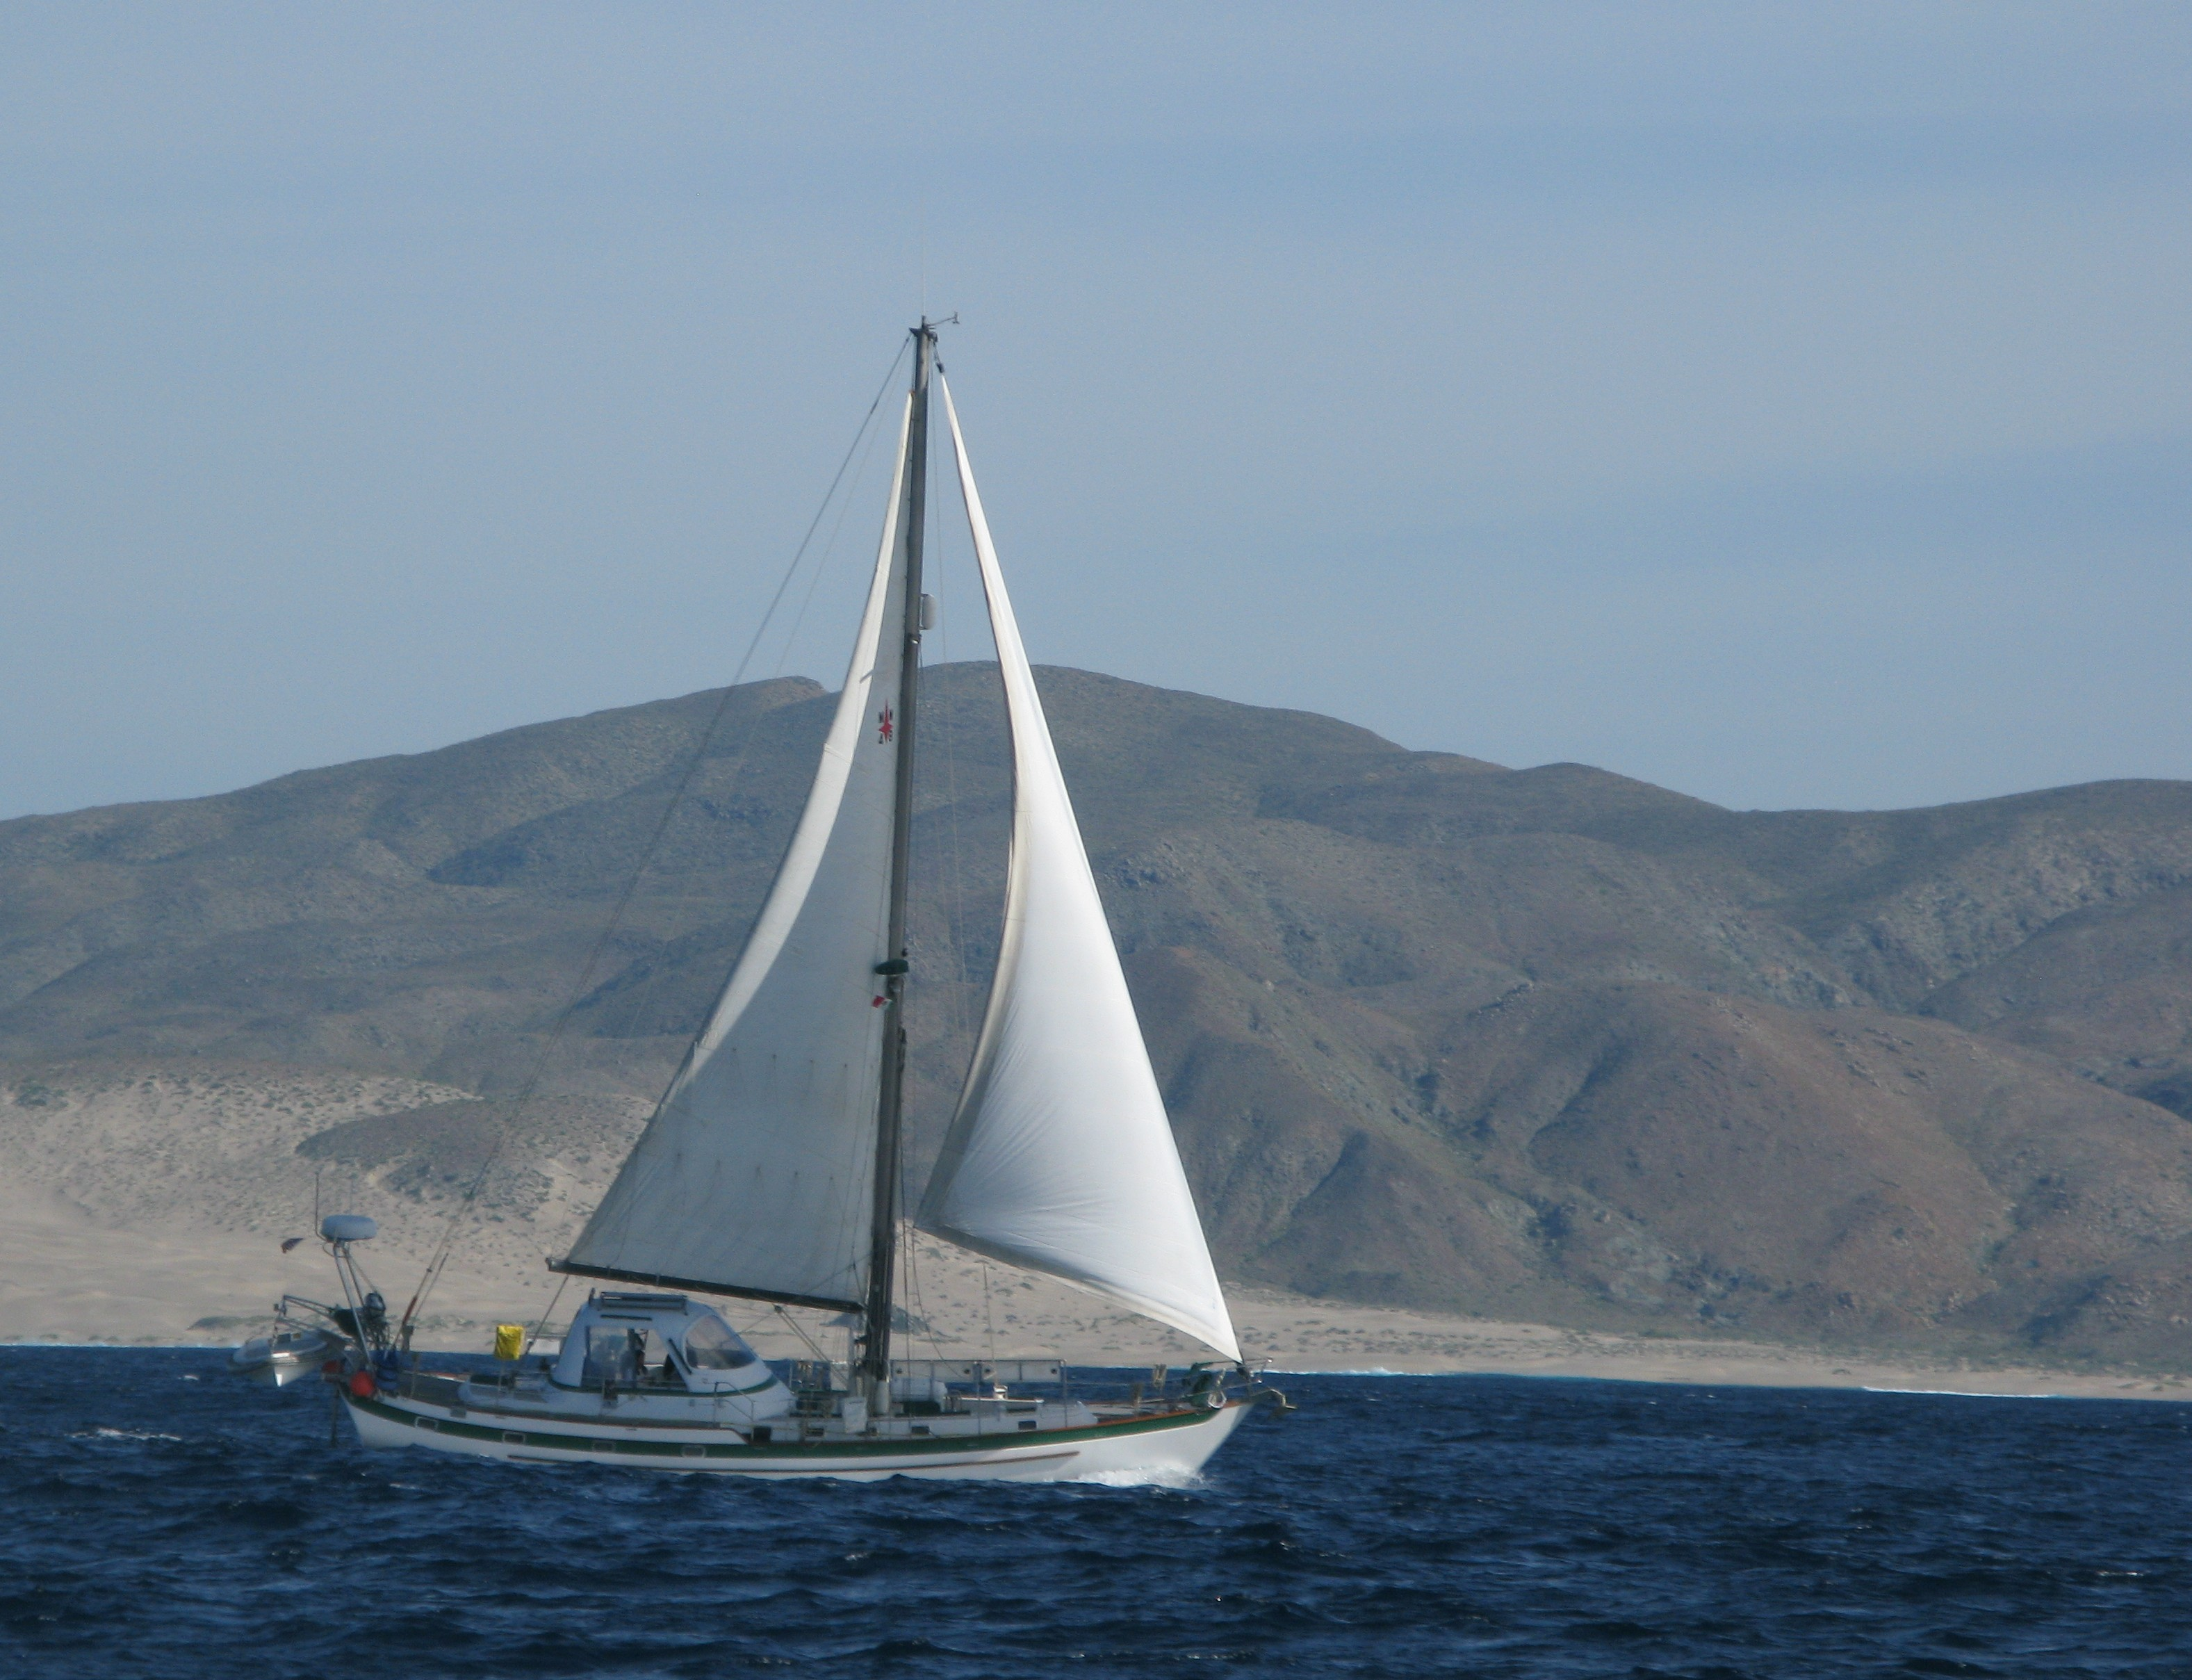 Sloop Mayflower/Stadel48